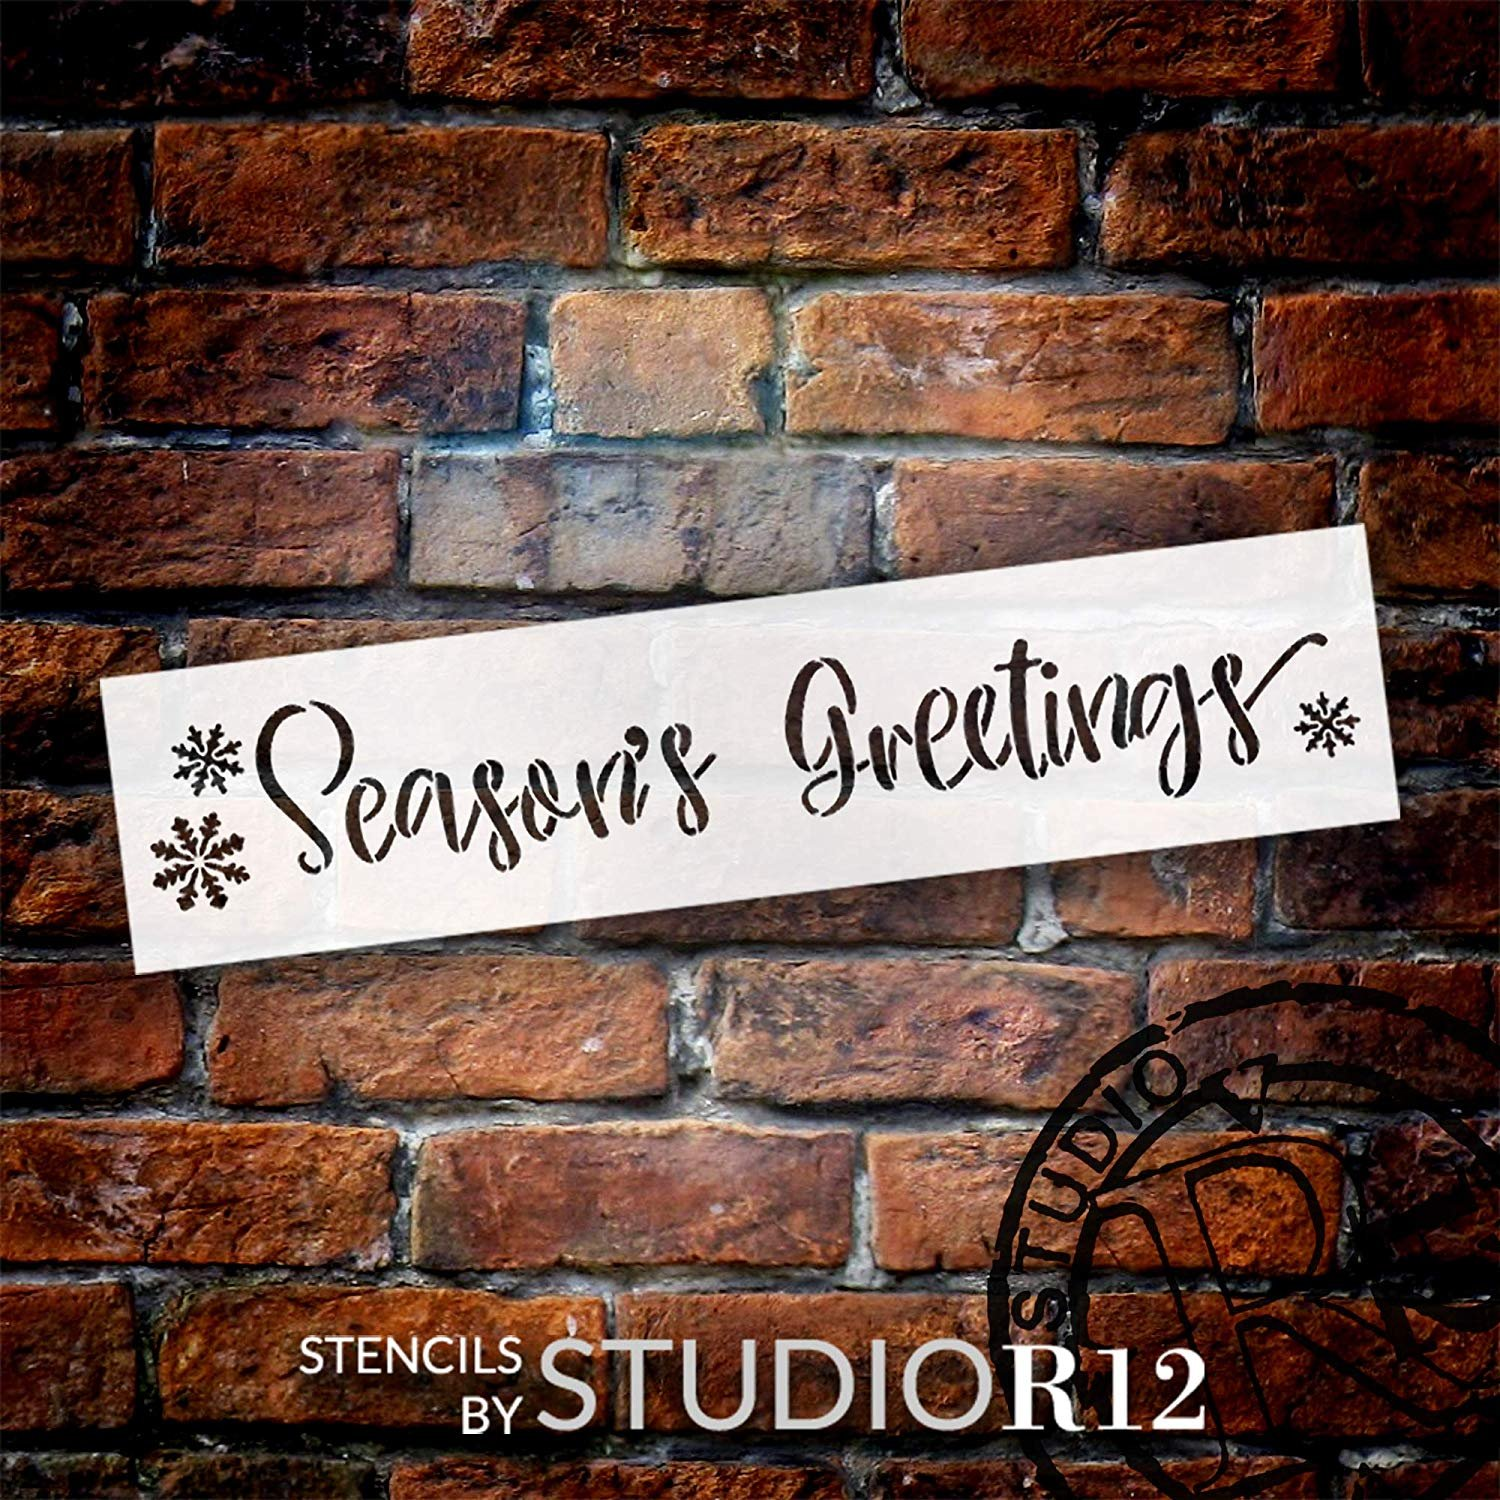 Season's Greetings Stencil with Snowflakes StudioR12 | Rustic Cursive Script Word Art | DIY Christmas Holiday Welcome Home Decor | Paint Wood Signs | Reusable Mylar | Select Size